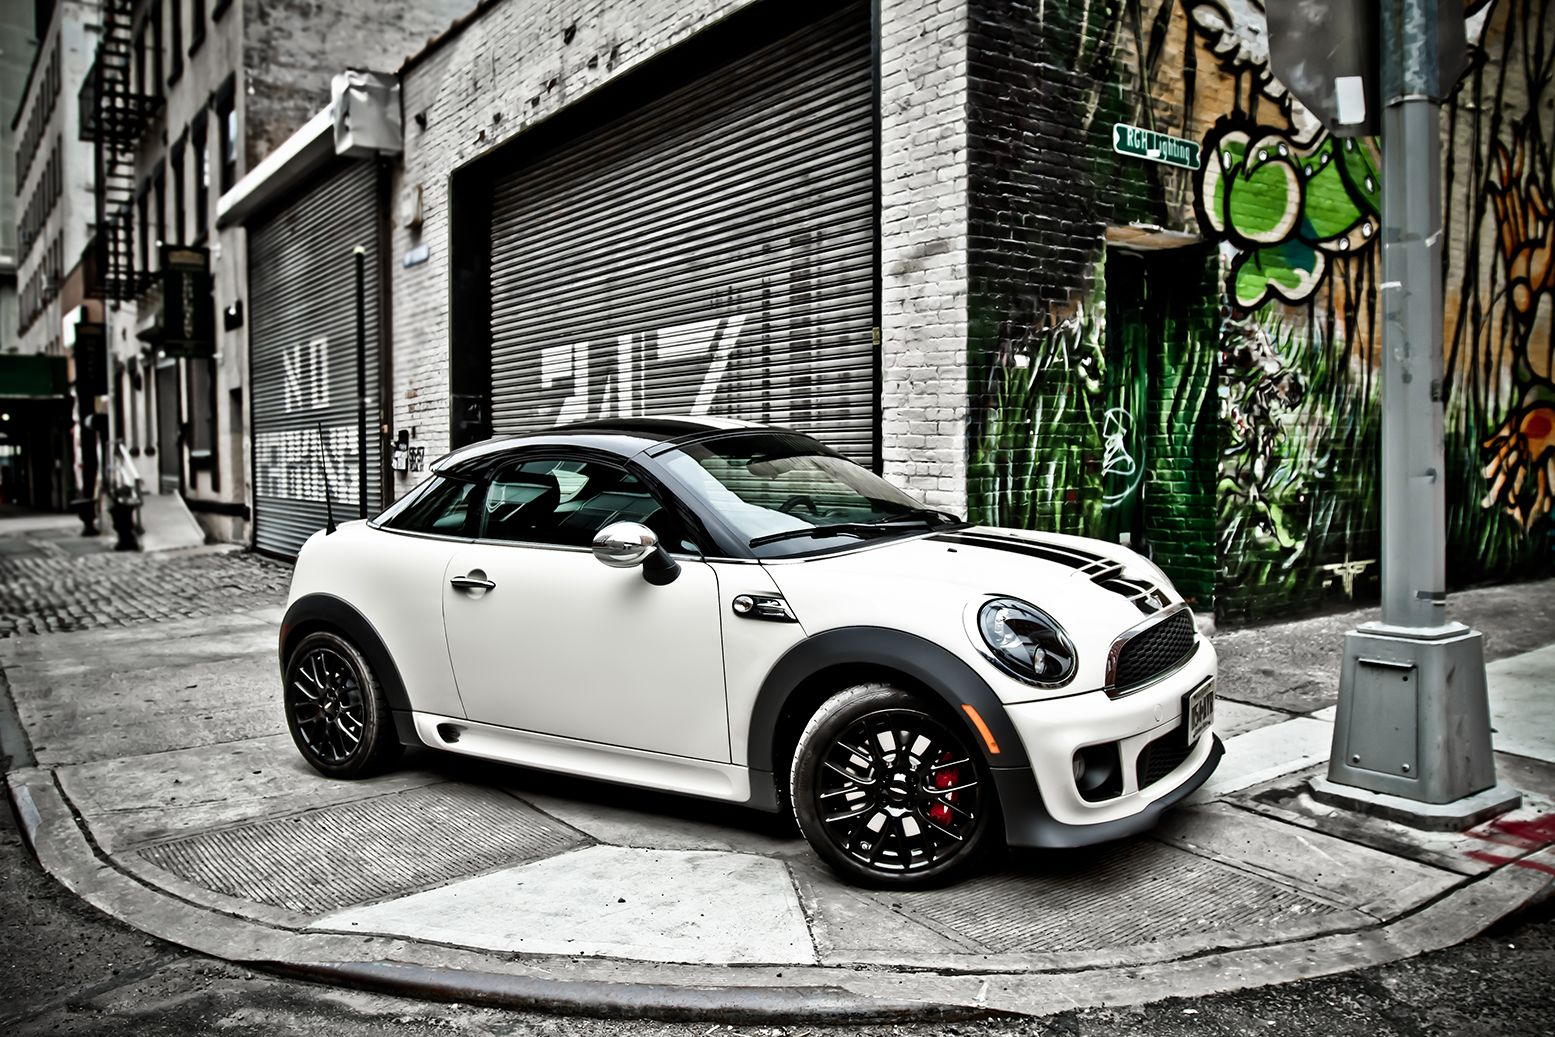 mini cooper coupe jcw water street dumbo bk car spotting pinterest minis water and street. Black Bedroom Furniture Sets. Home Design Ideas